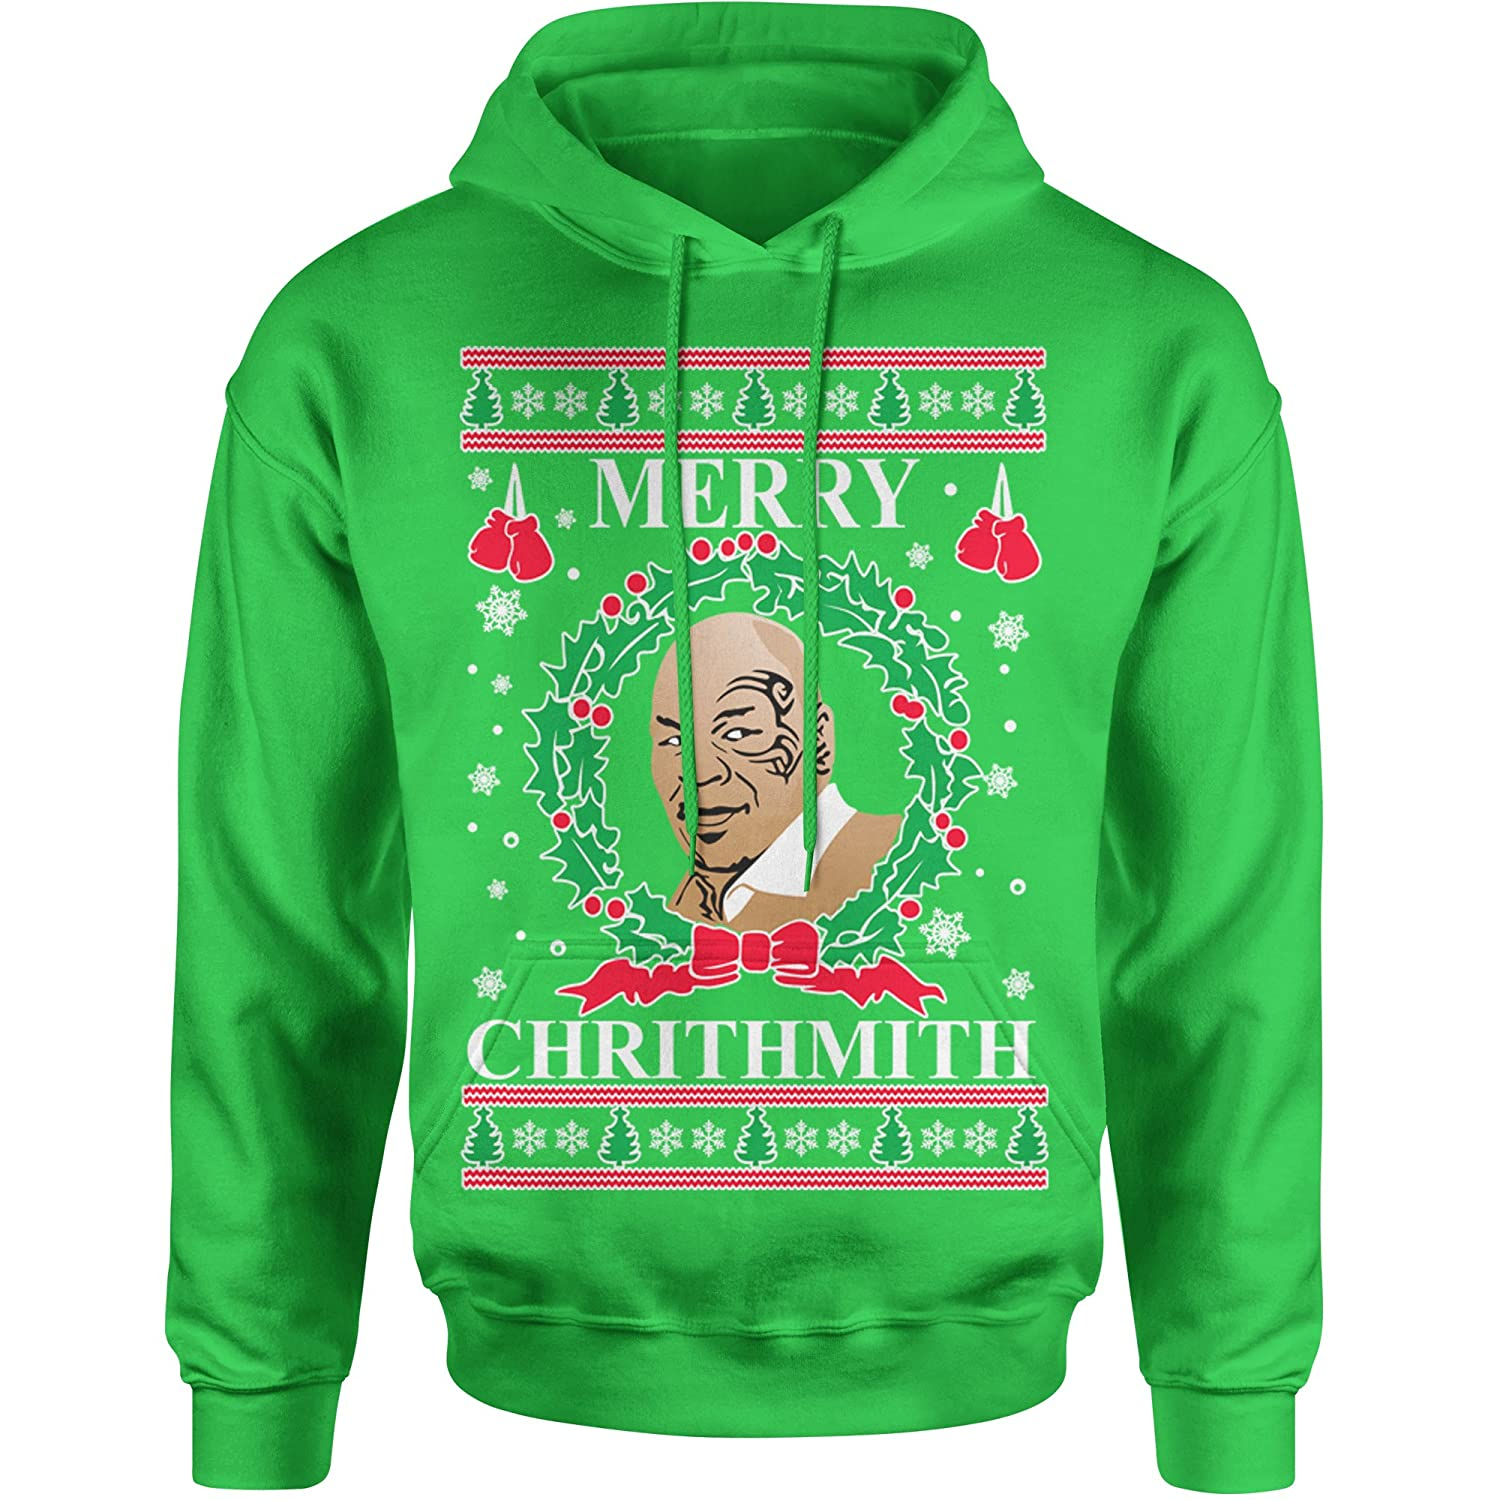 Expression Tees Merry Chrithmith Ugly Christmas Unisex Adult Hoodie 8089-H